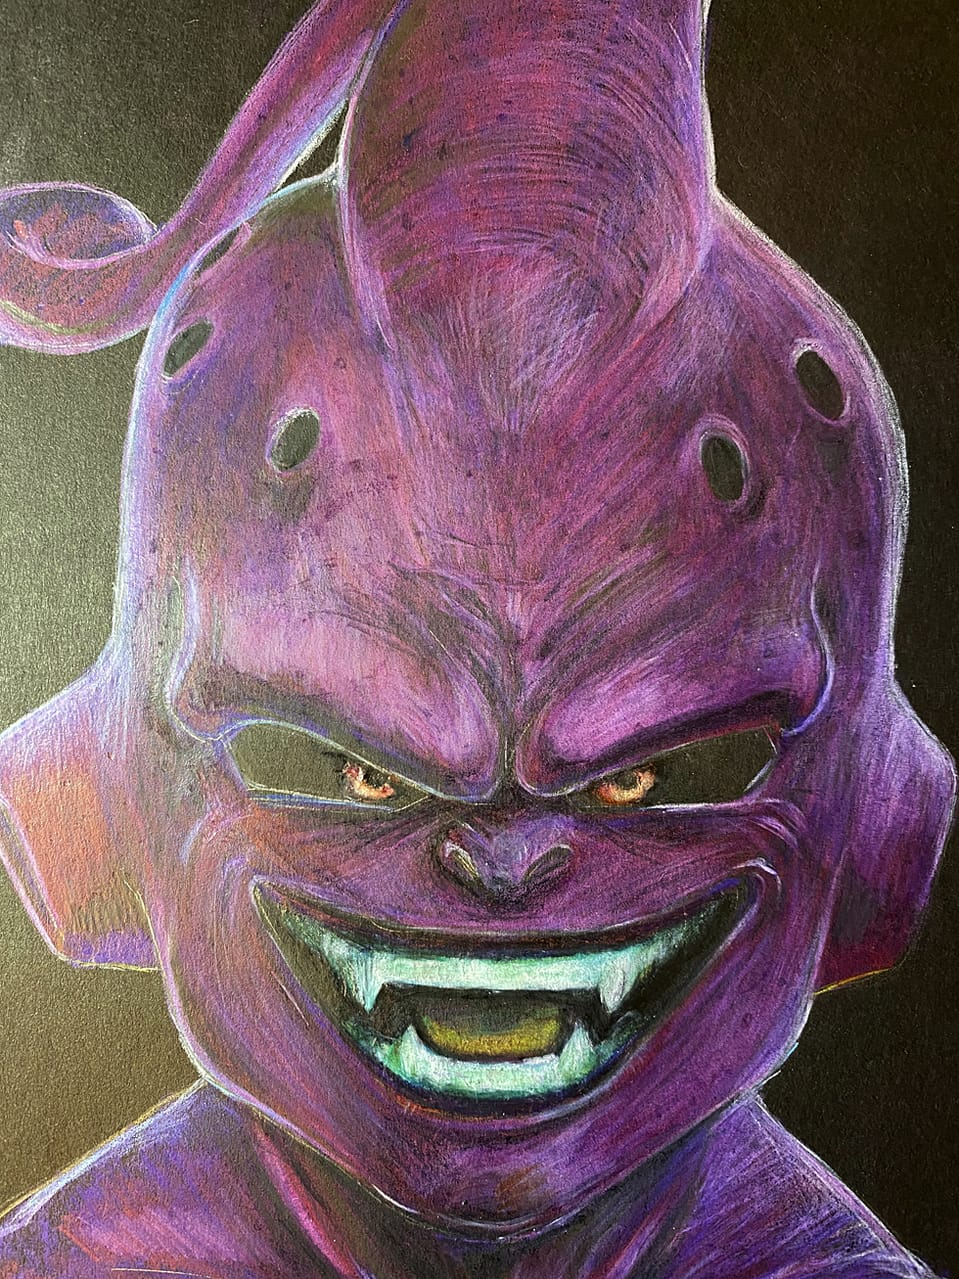 【Drawing】Majin Buu / Colored pencil/ Timelapse Illust of chuanchieh girl ペン画 Majin sketch drawing fanfic Buu art illustration